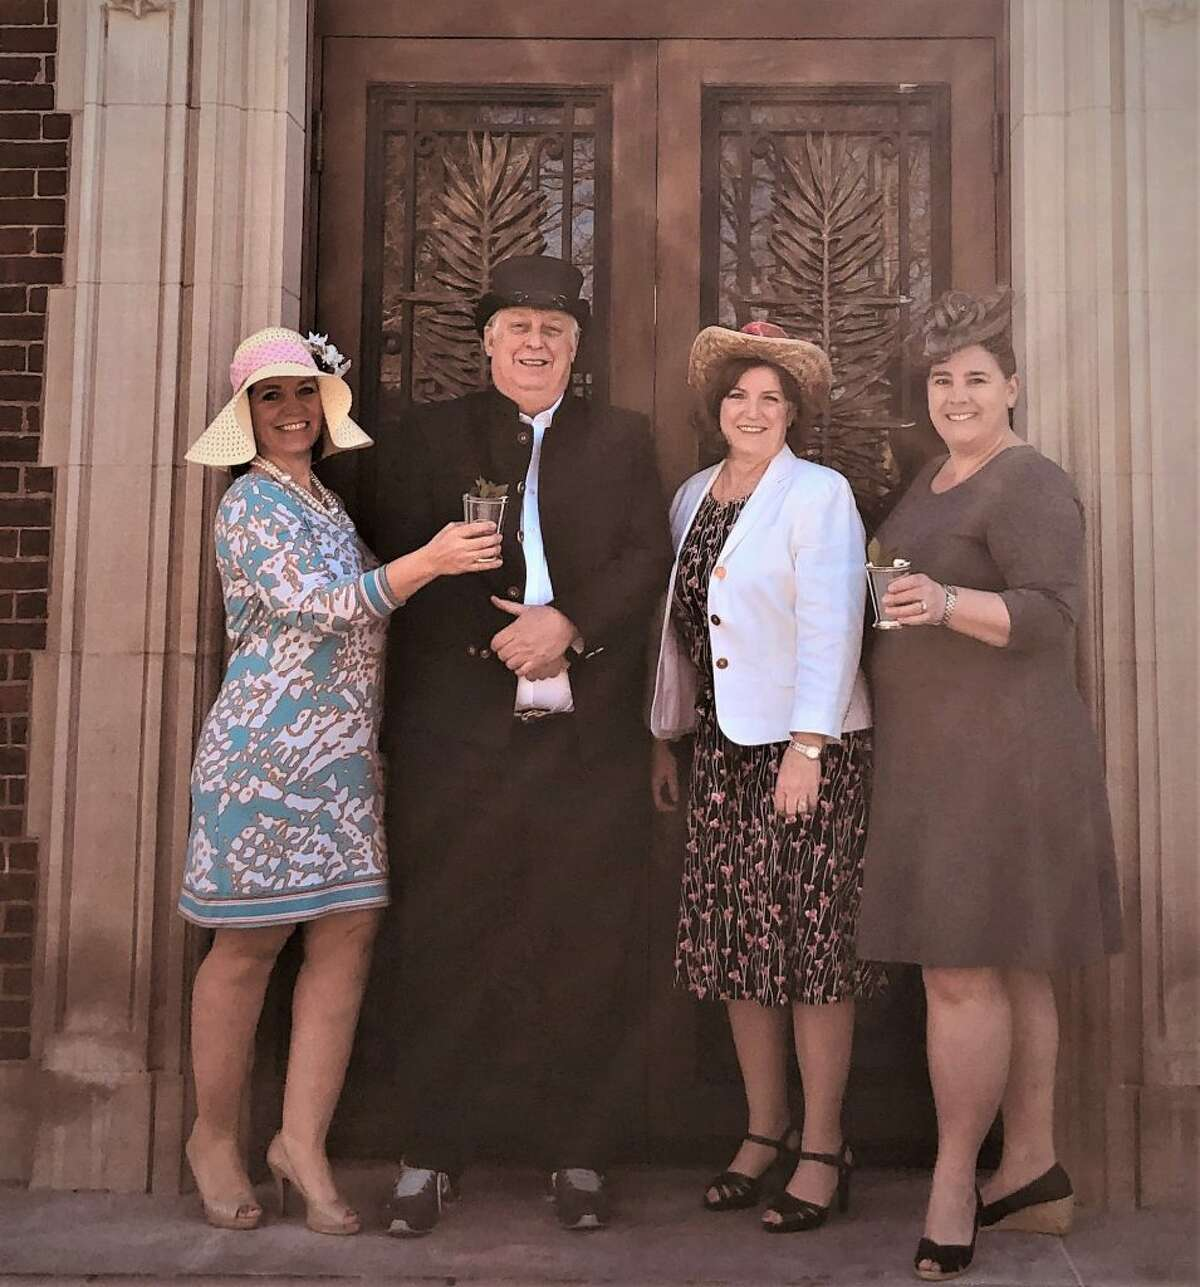 The Ridgefield Library will be hosting a Kentucky Derby-themed gala. Committee members, from left to right, Michele Booth, Rob Ellis, Julie Yaun and Lynn Everdell prepare for the 145th Run for the Roses by donning derby-inspired outfits in front of the library.